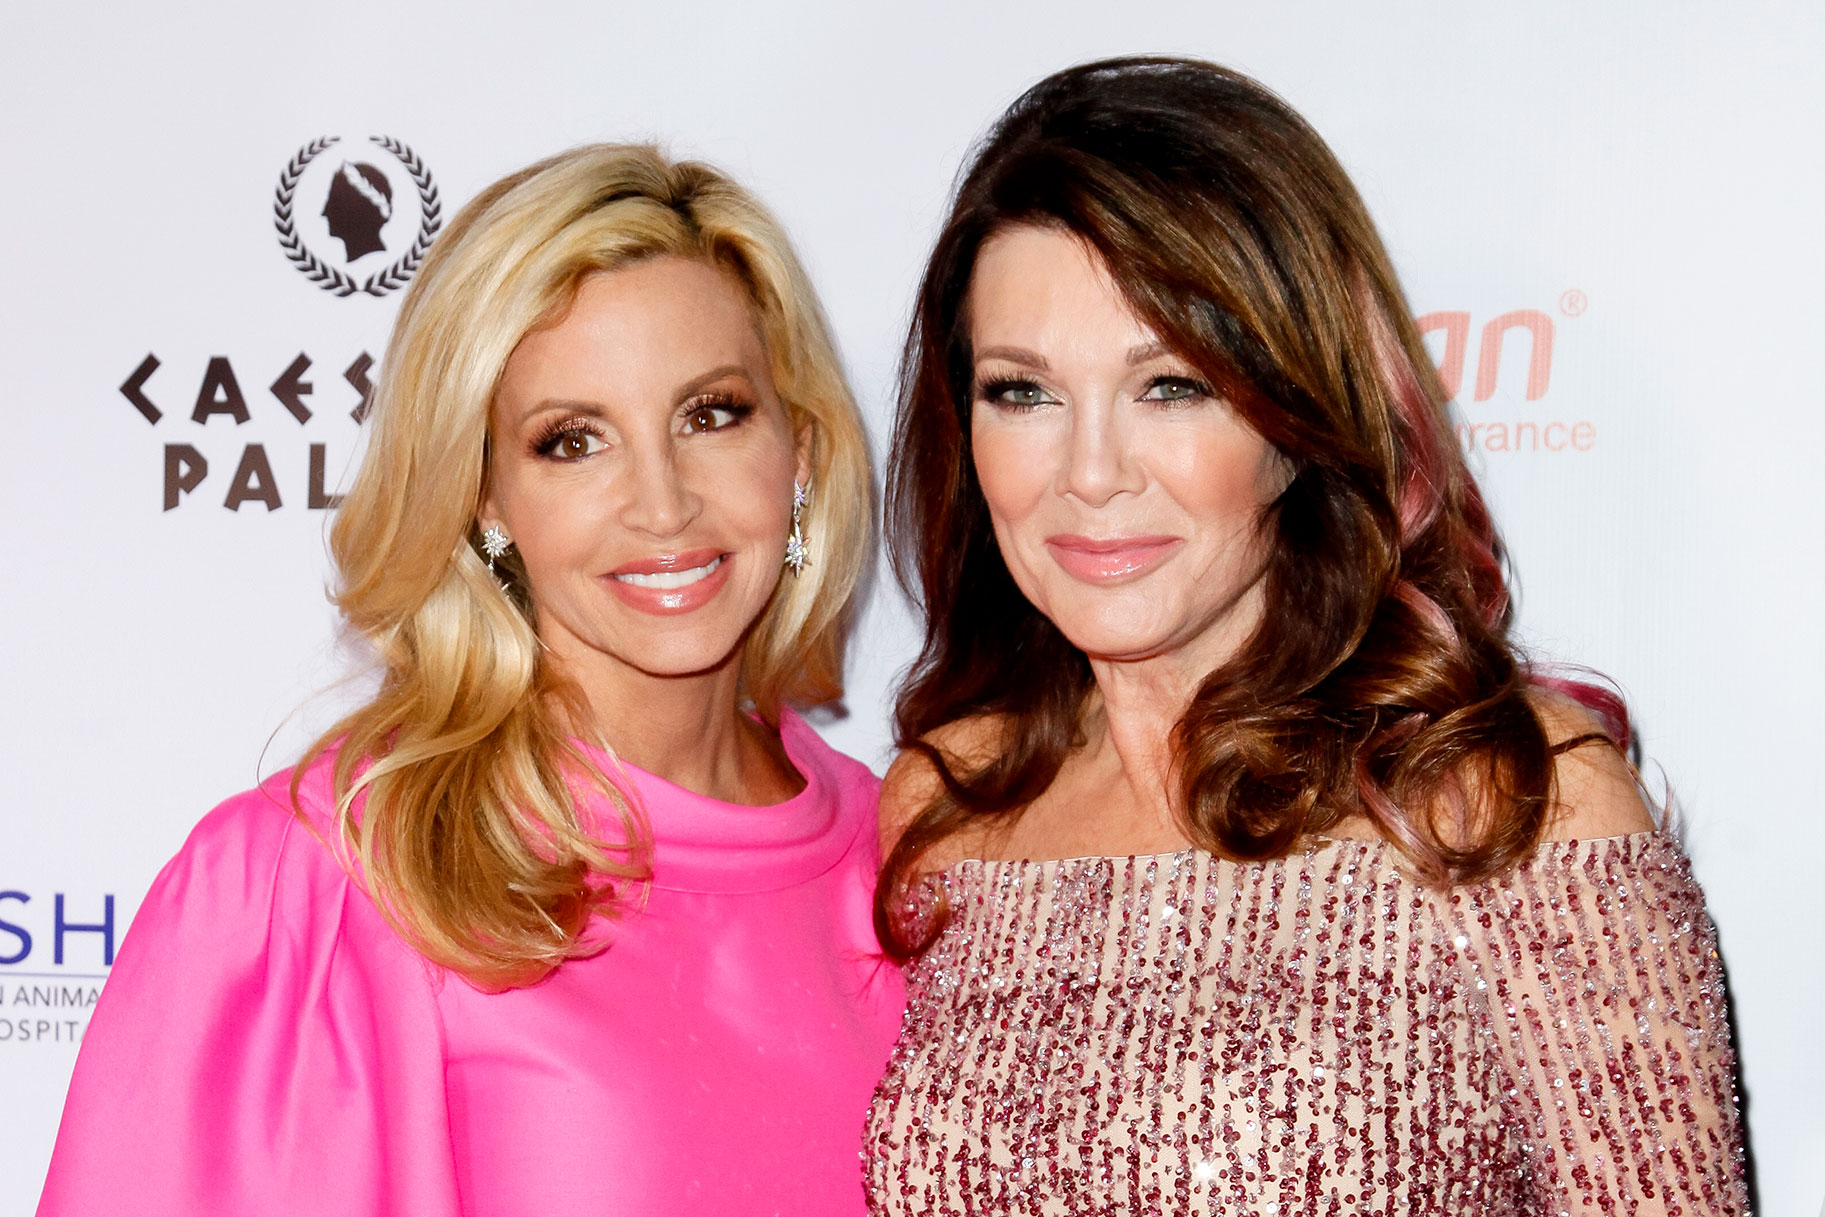 Camille Grammer Lisa Vanderpump Friendship